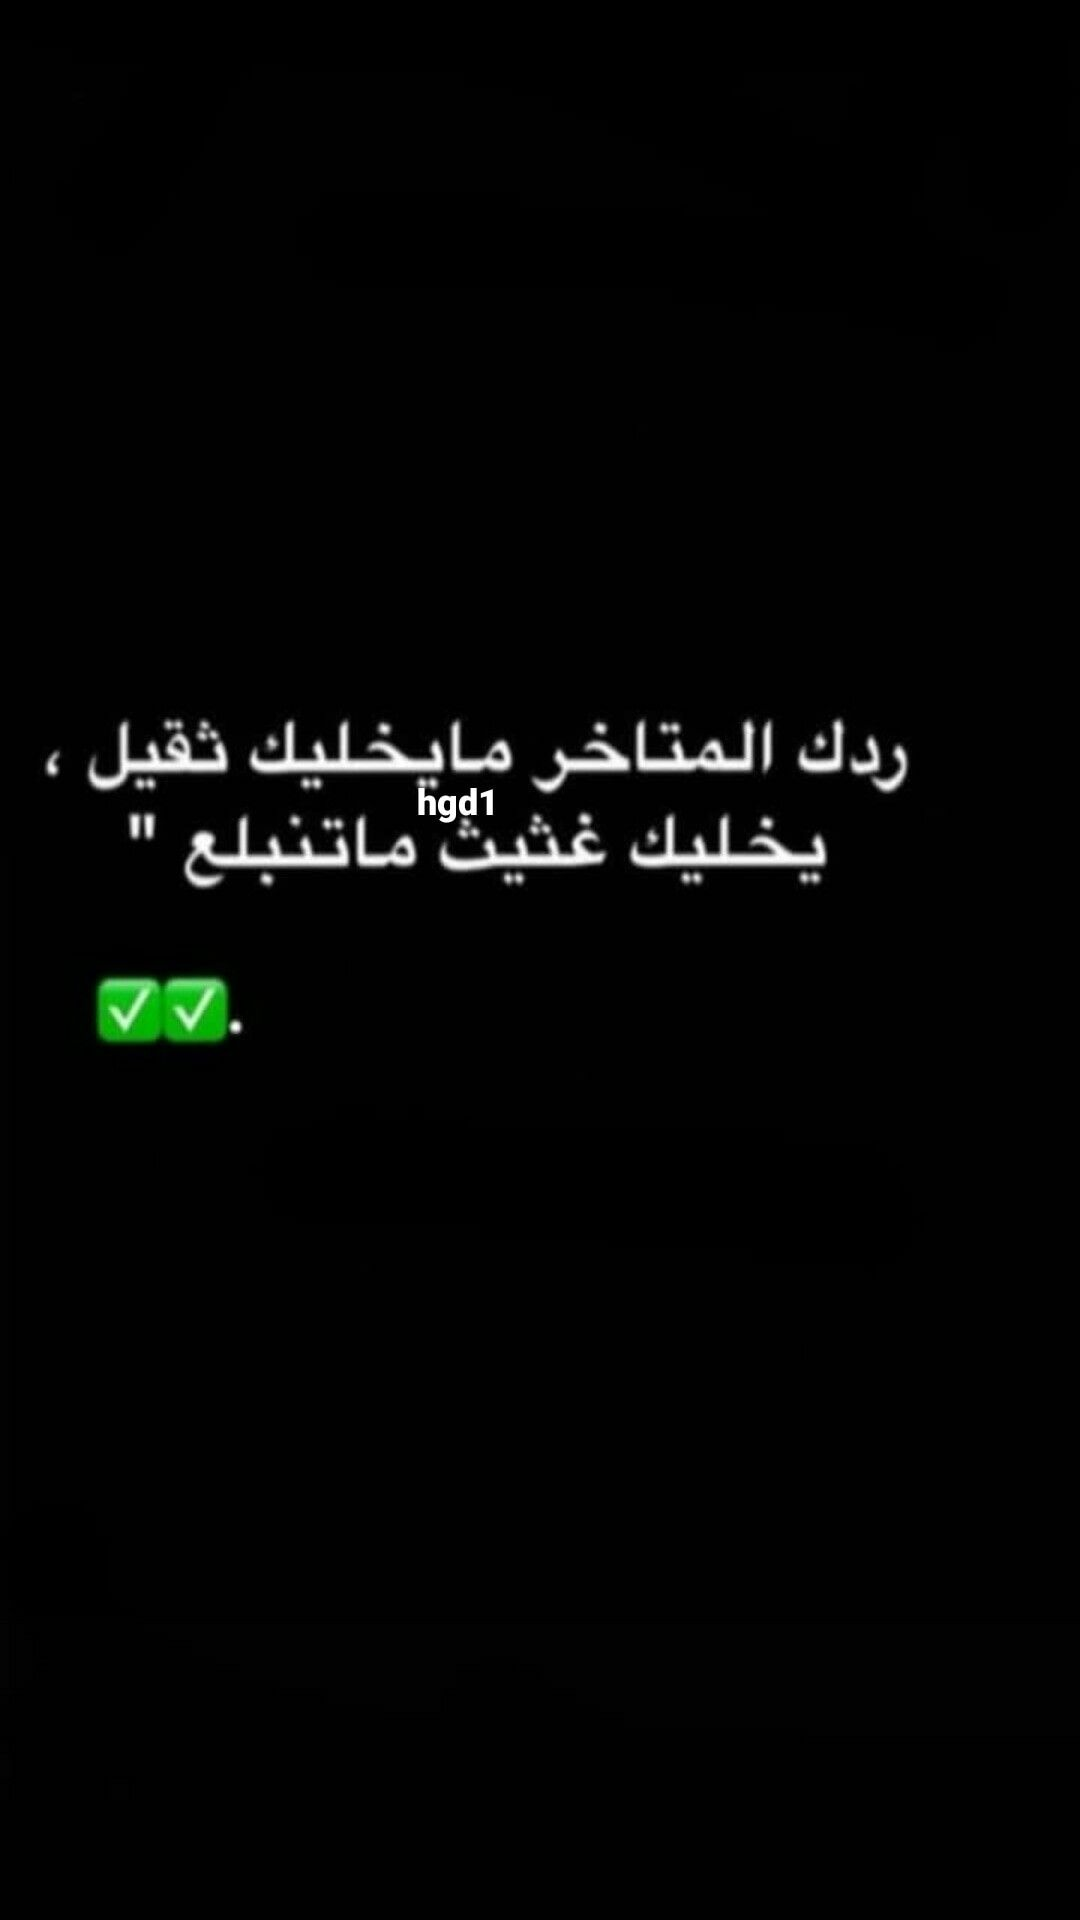 Pin By Rehab Yousef On ضحك و وناسه Jokes Quotes Fun Quotes Funny Relatable Quotes